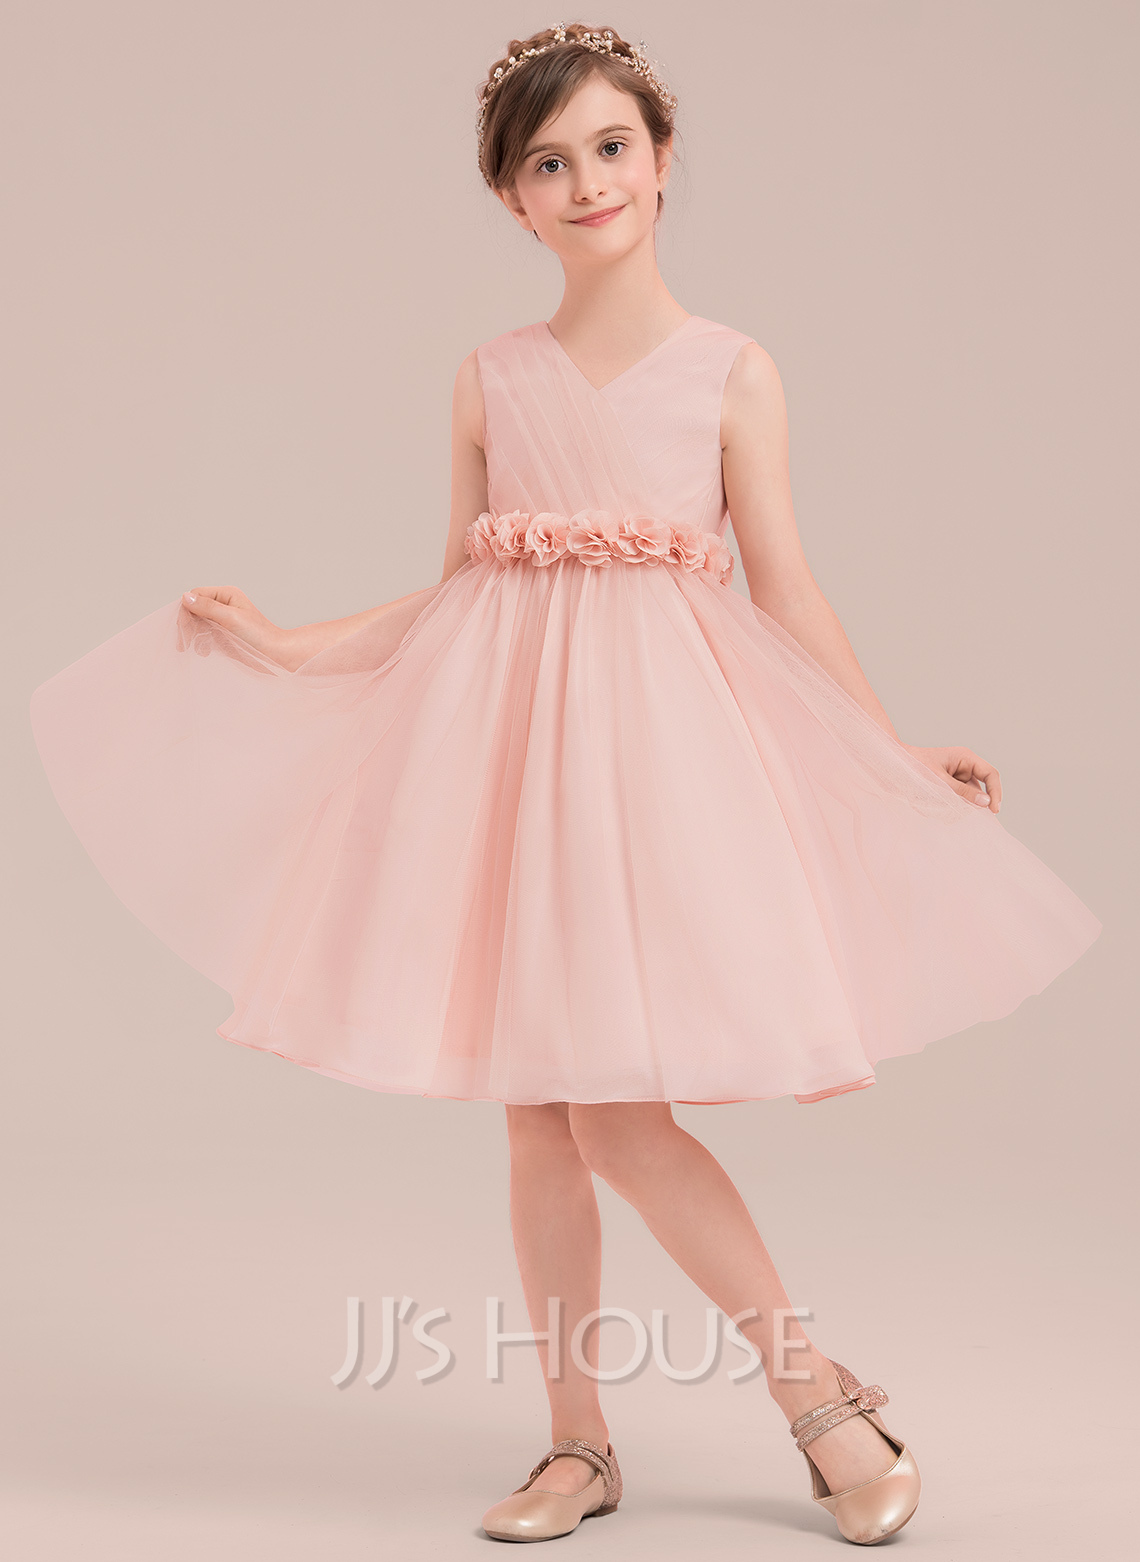 A-Line/Princess Knee-length Flower Girl Dress - Tulle Sleeveless V-neck With Flower(s)